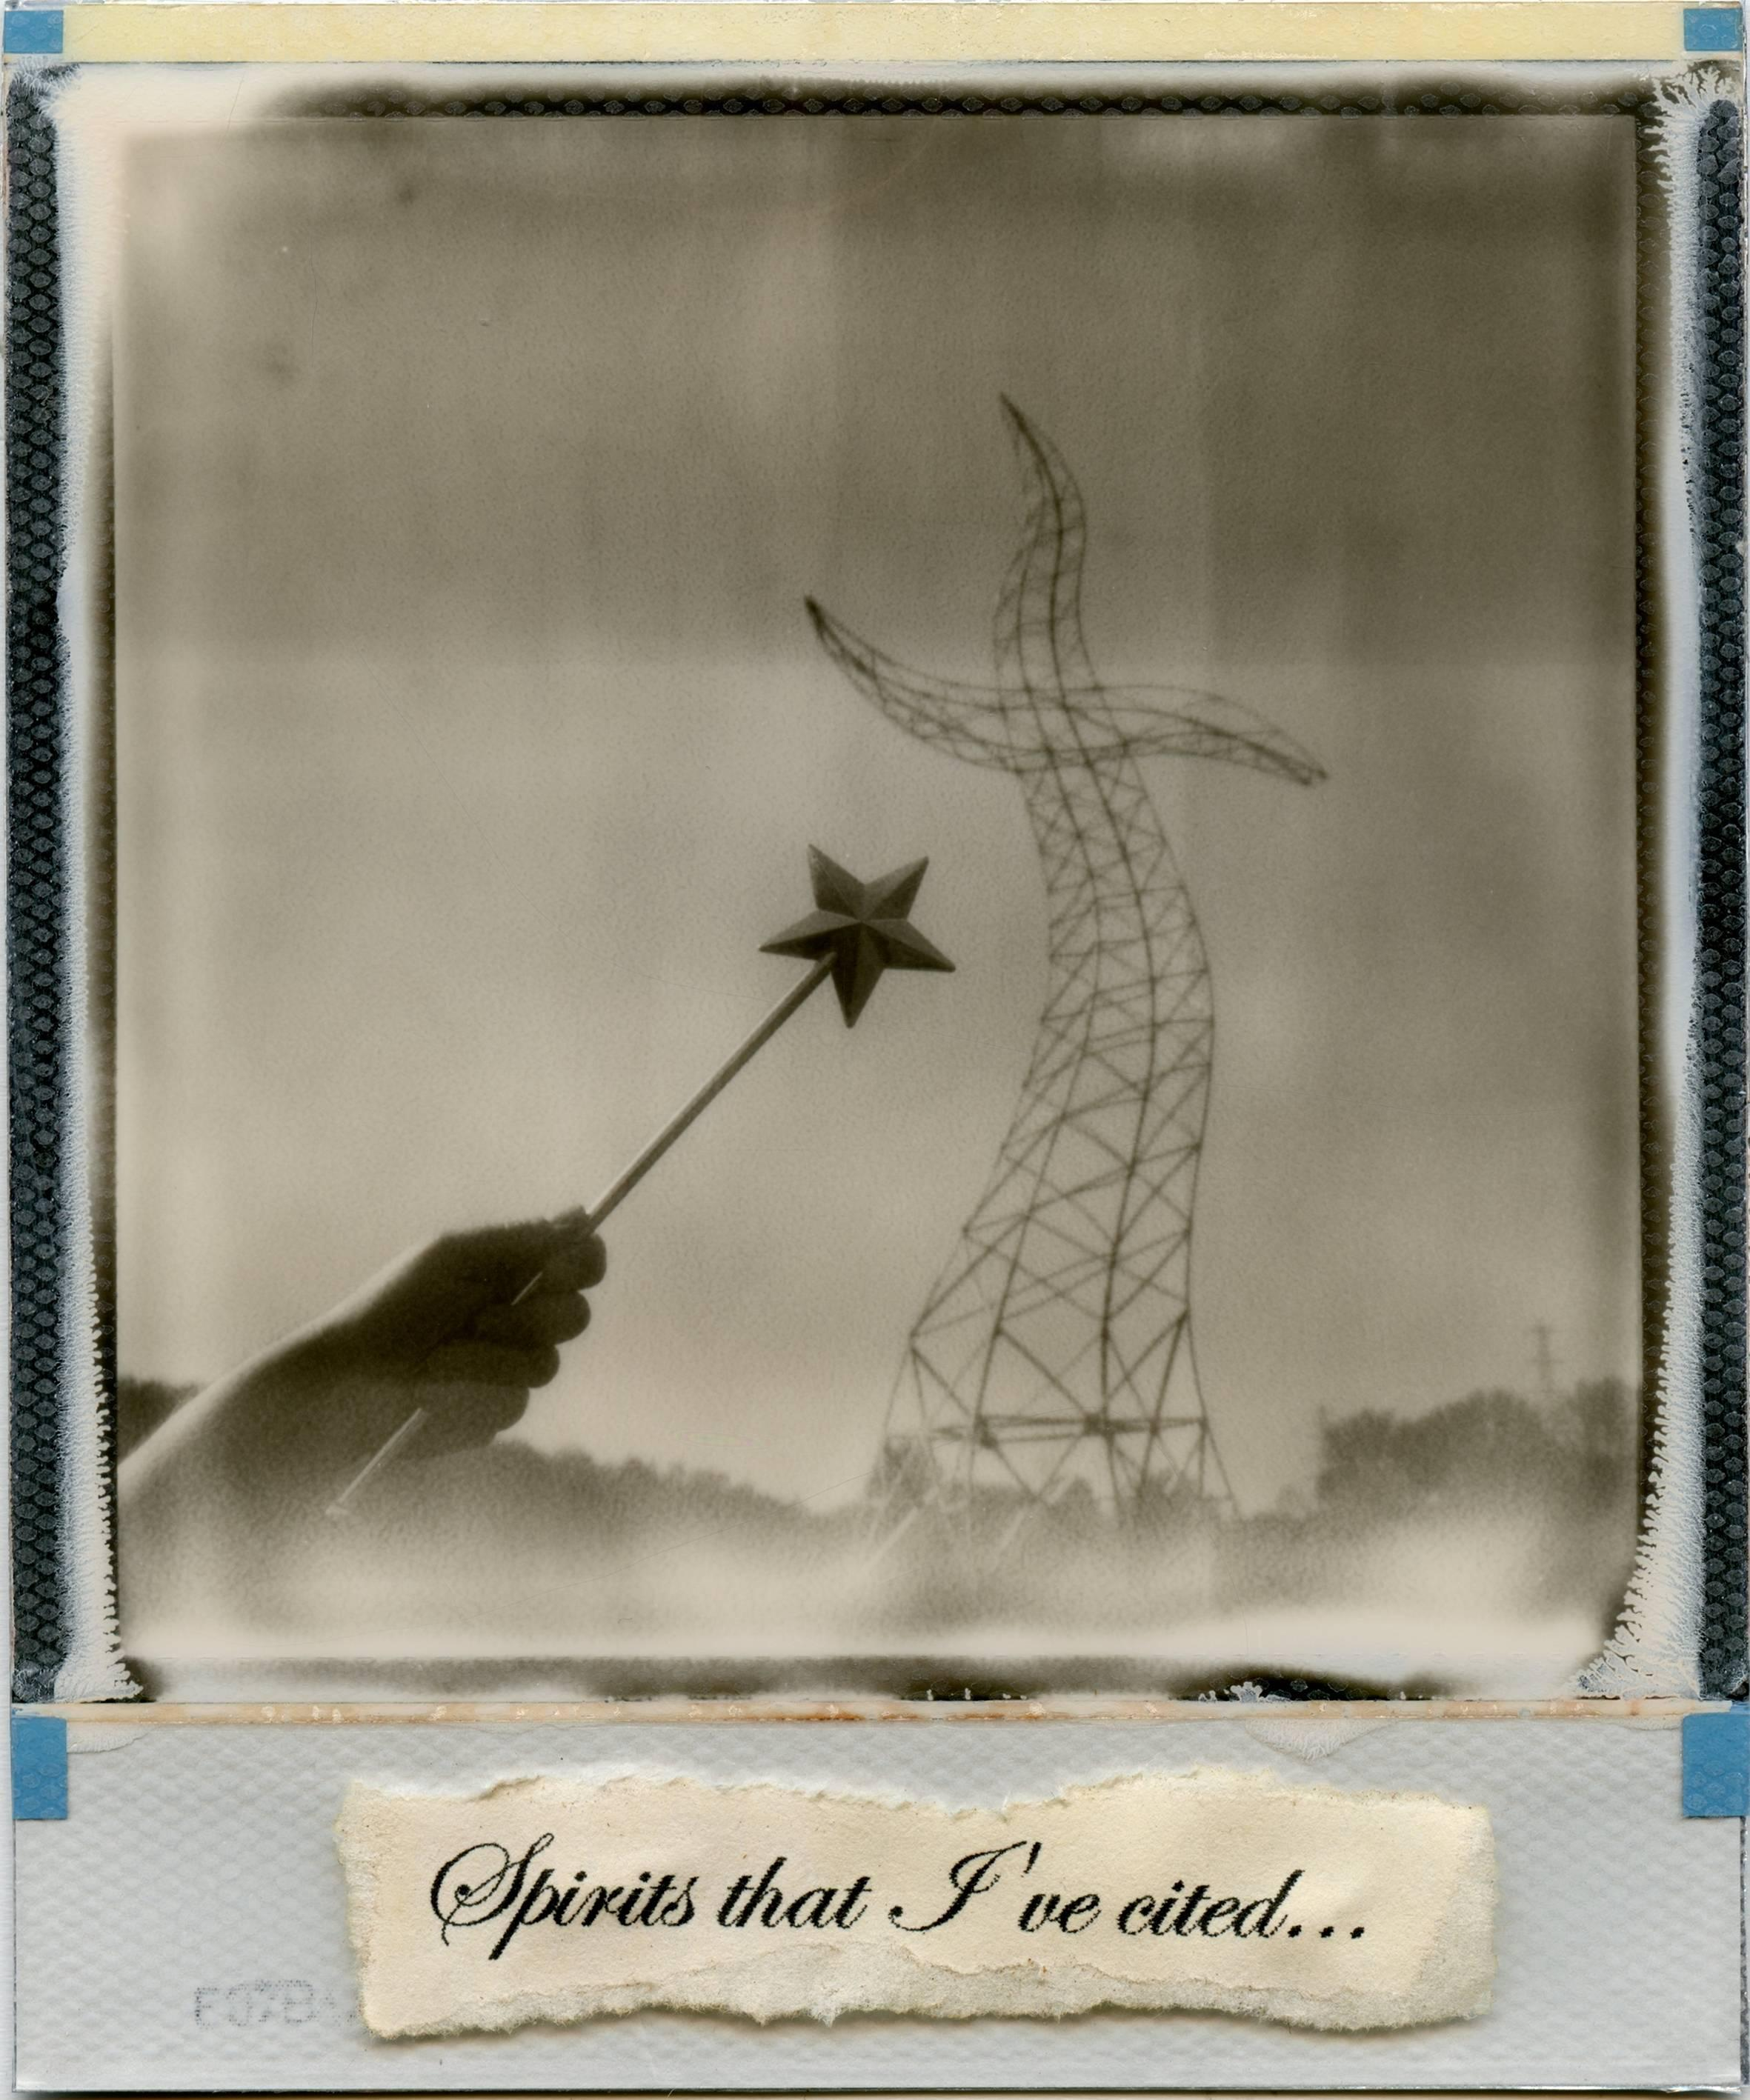 The Sorcerers Apprentice Contemporary, Abstract, Landscape, Polaroid, Photograph